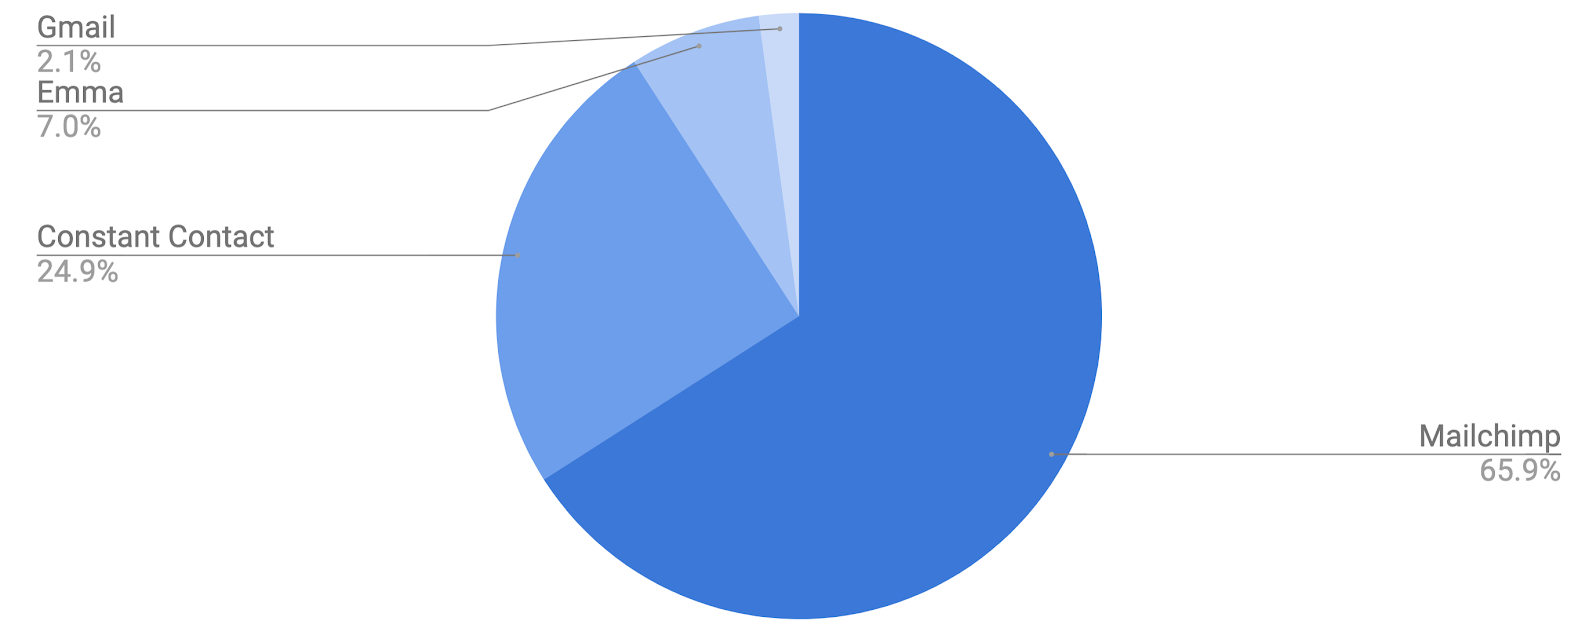 Pie chart showing data for the best and most popular email marketing software for nonprofits including Gmail, Mailchimp, Constant Contact, and Emma